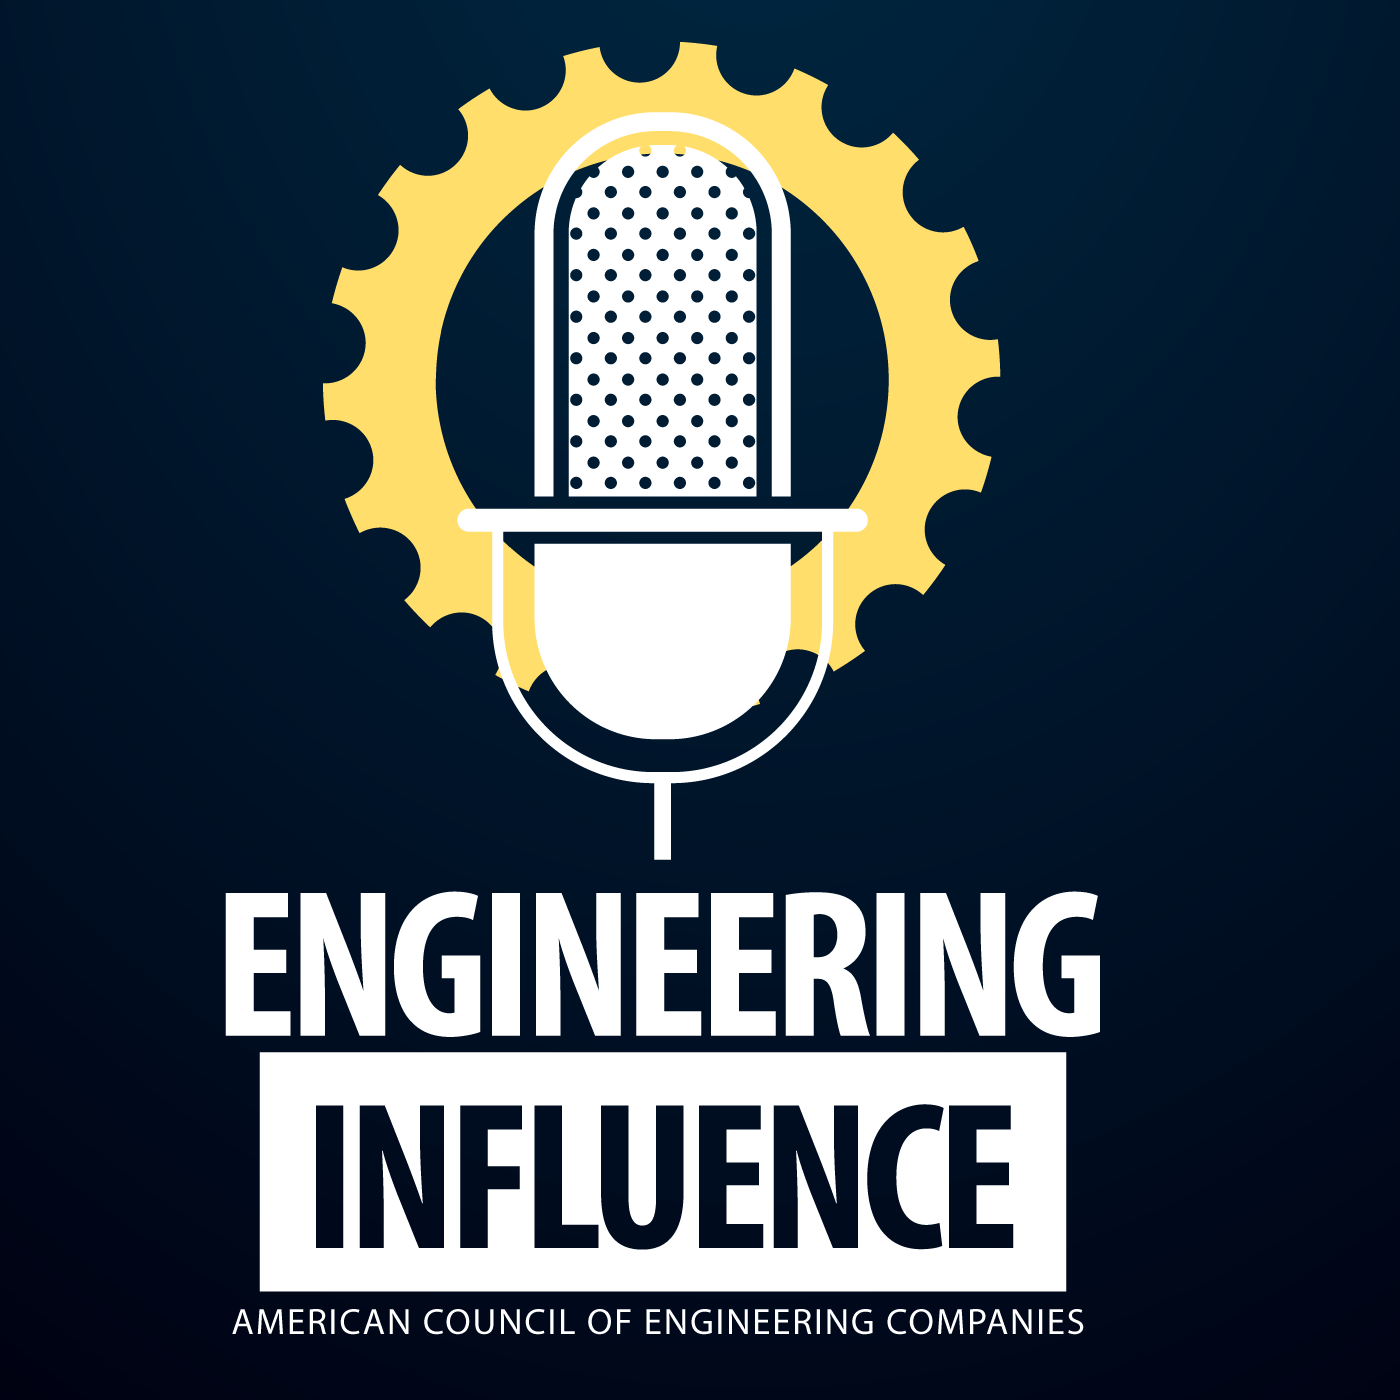 ACEC National Engineering Influence Podcast